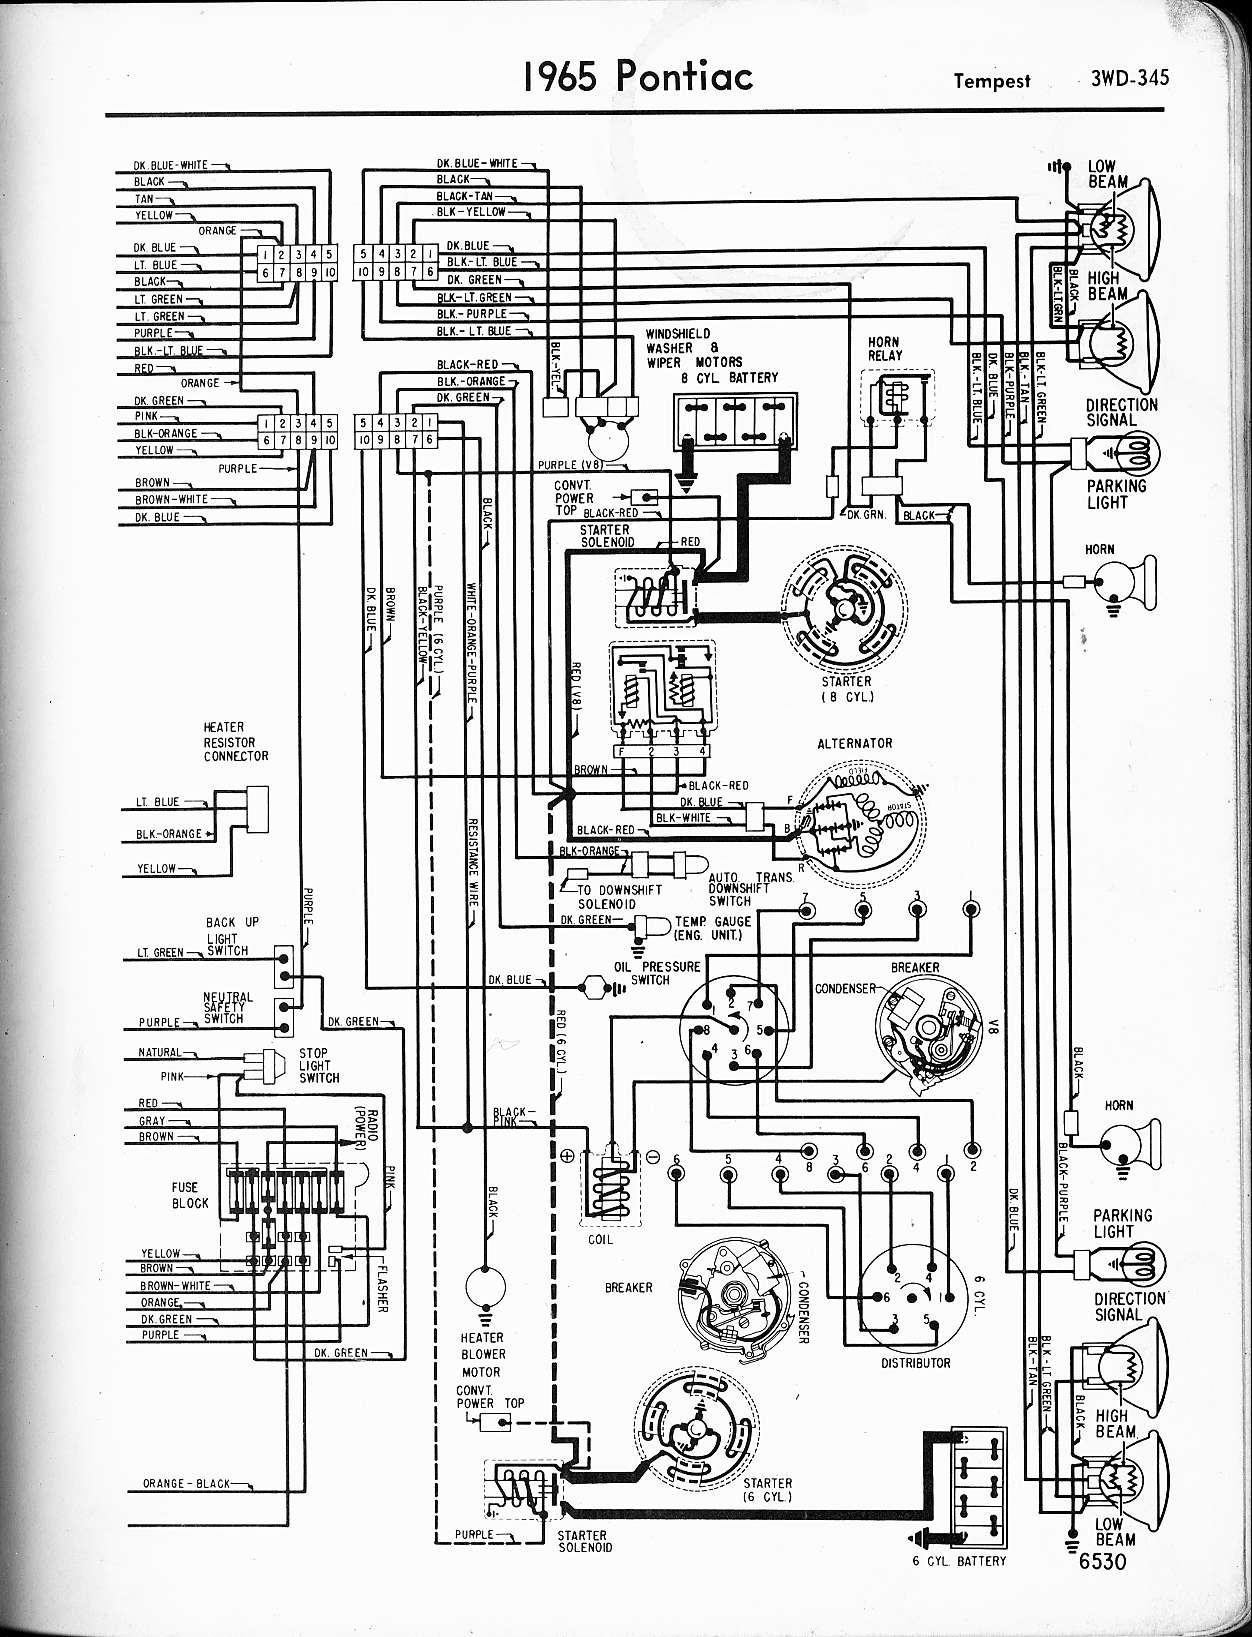 1965 Ford 6 And V8 Galaxie Part 1 Wiring Diagram Automotive Wiring